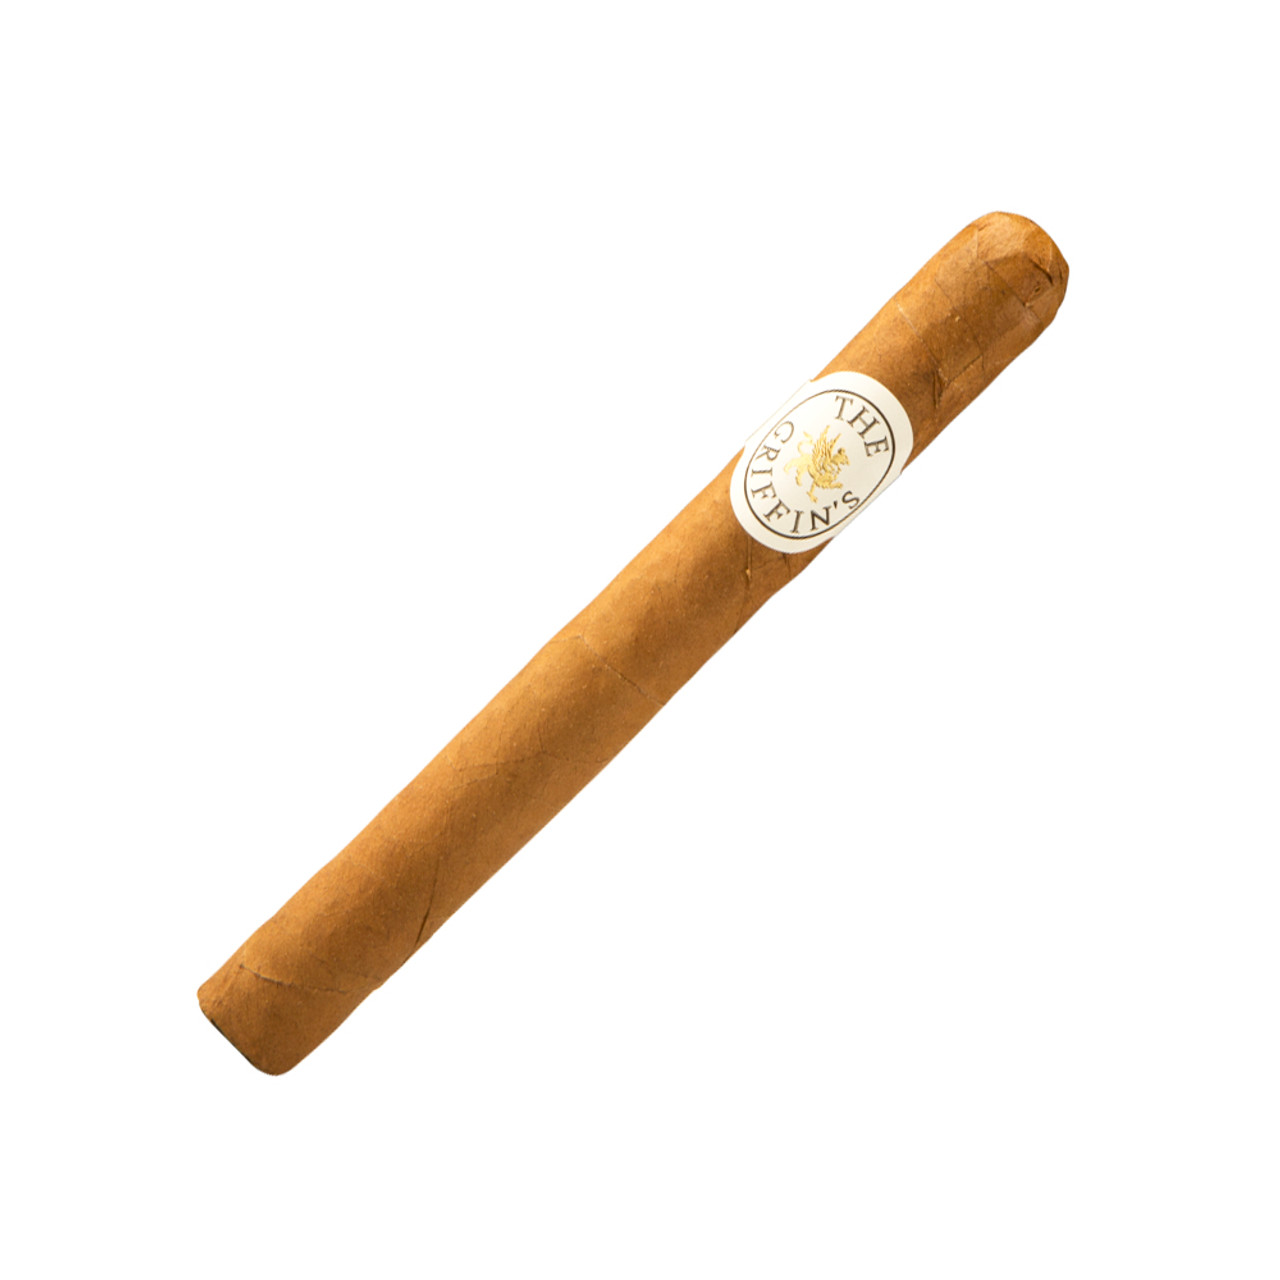 The Griffin's Puritos Cigars - 4 x 30 (10 Packs of 10 (100 Total))